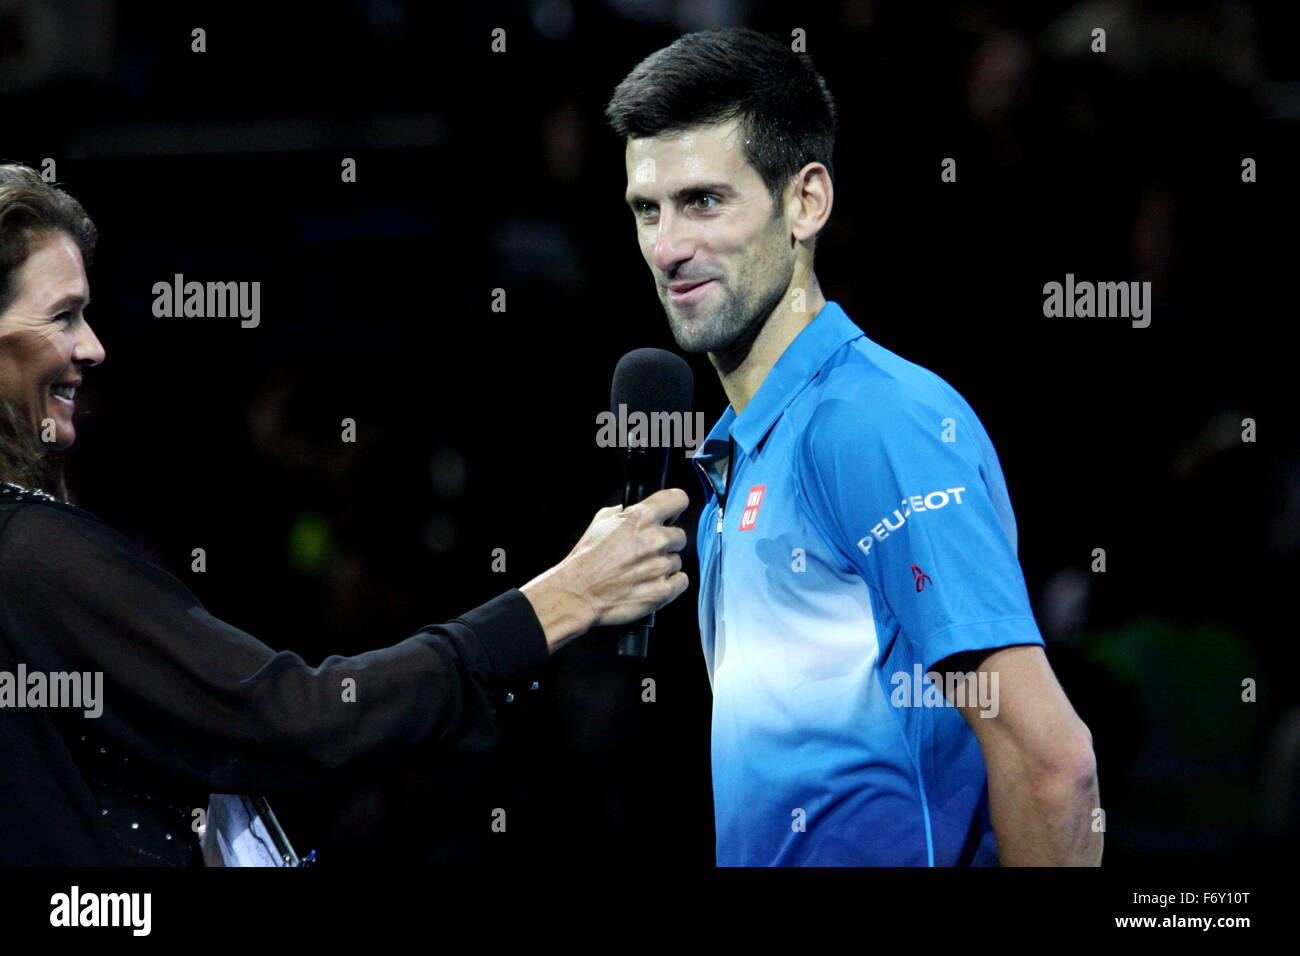 London, UK. 21st Nov, 2015. Barclays ATP World Tour Finals, Novak Djokovic (SRB) being interviewed on court after - Stock Image